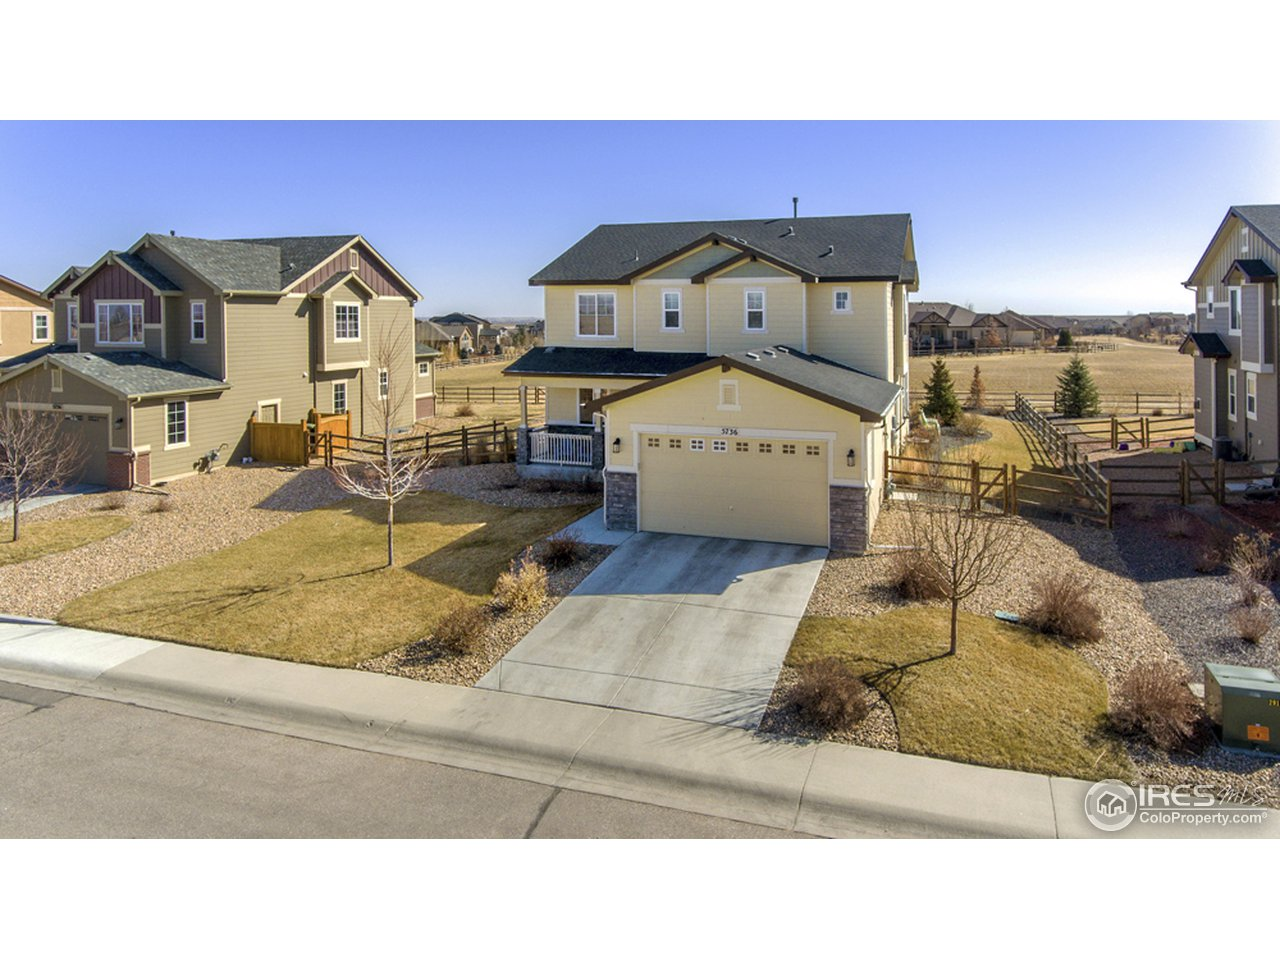 5736 Stone Chase Dr, Windsor CO 80550